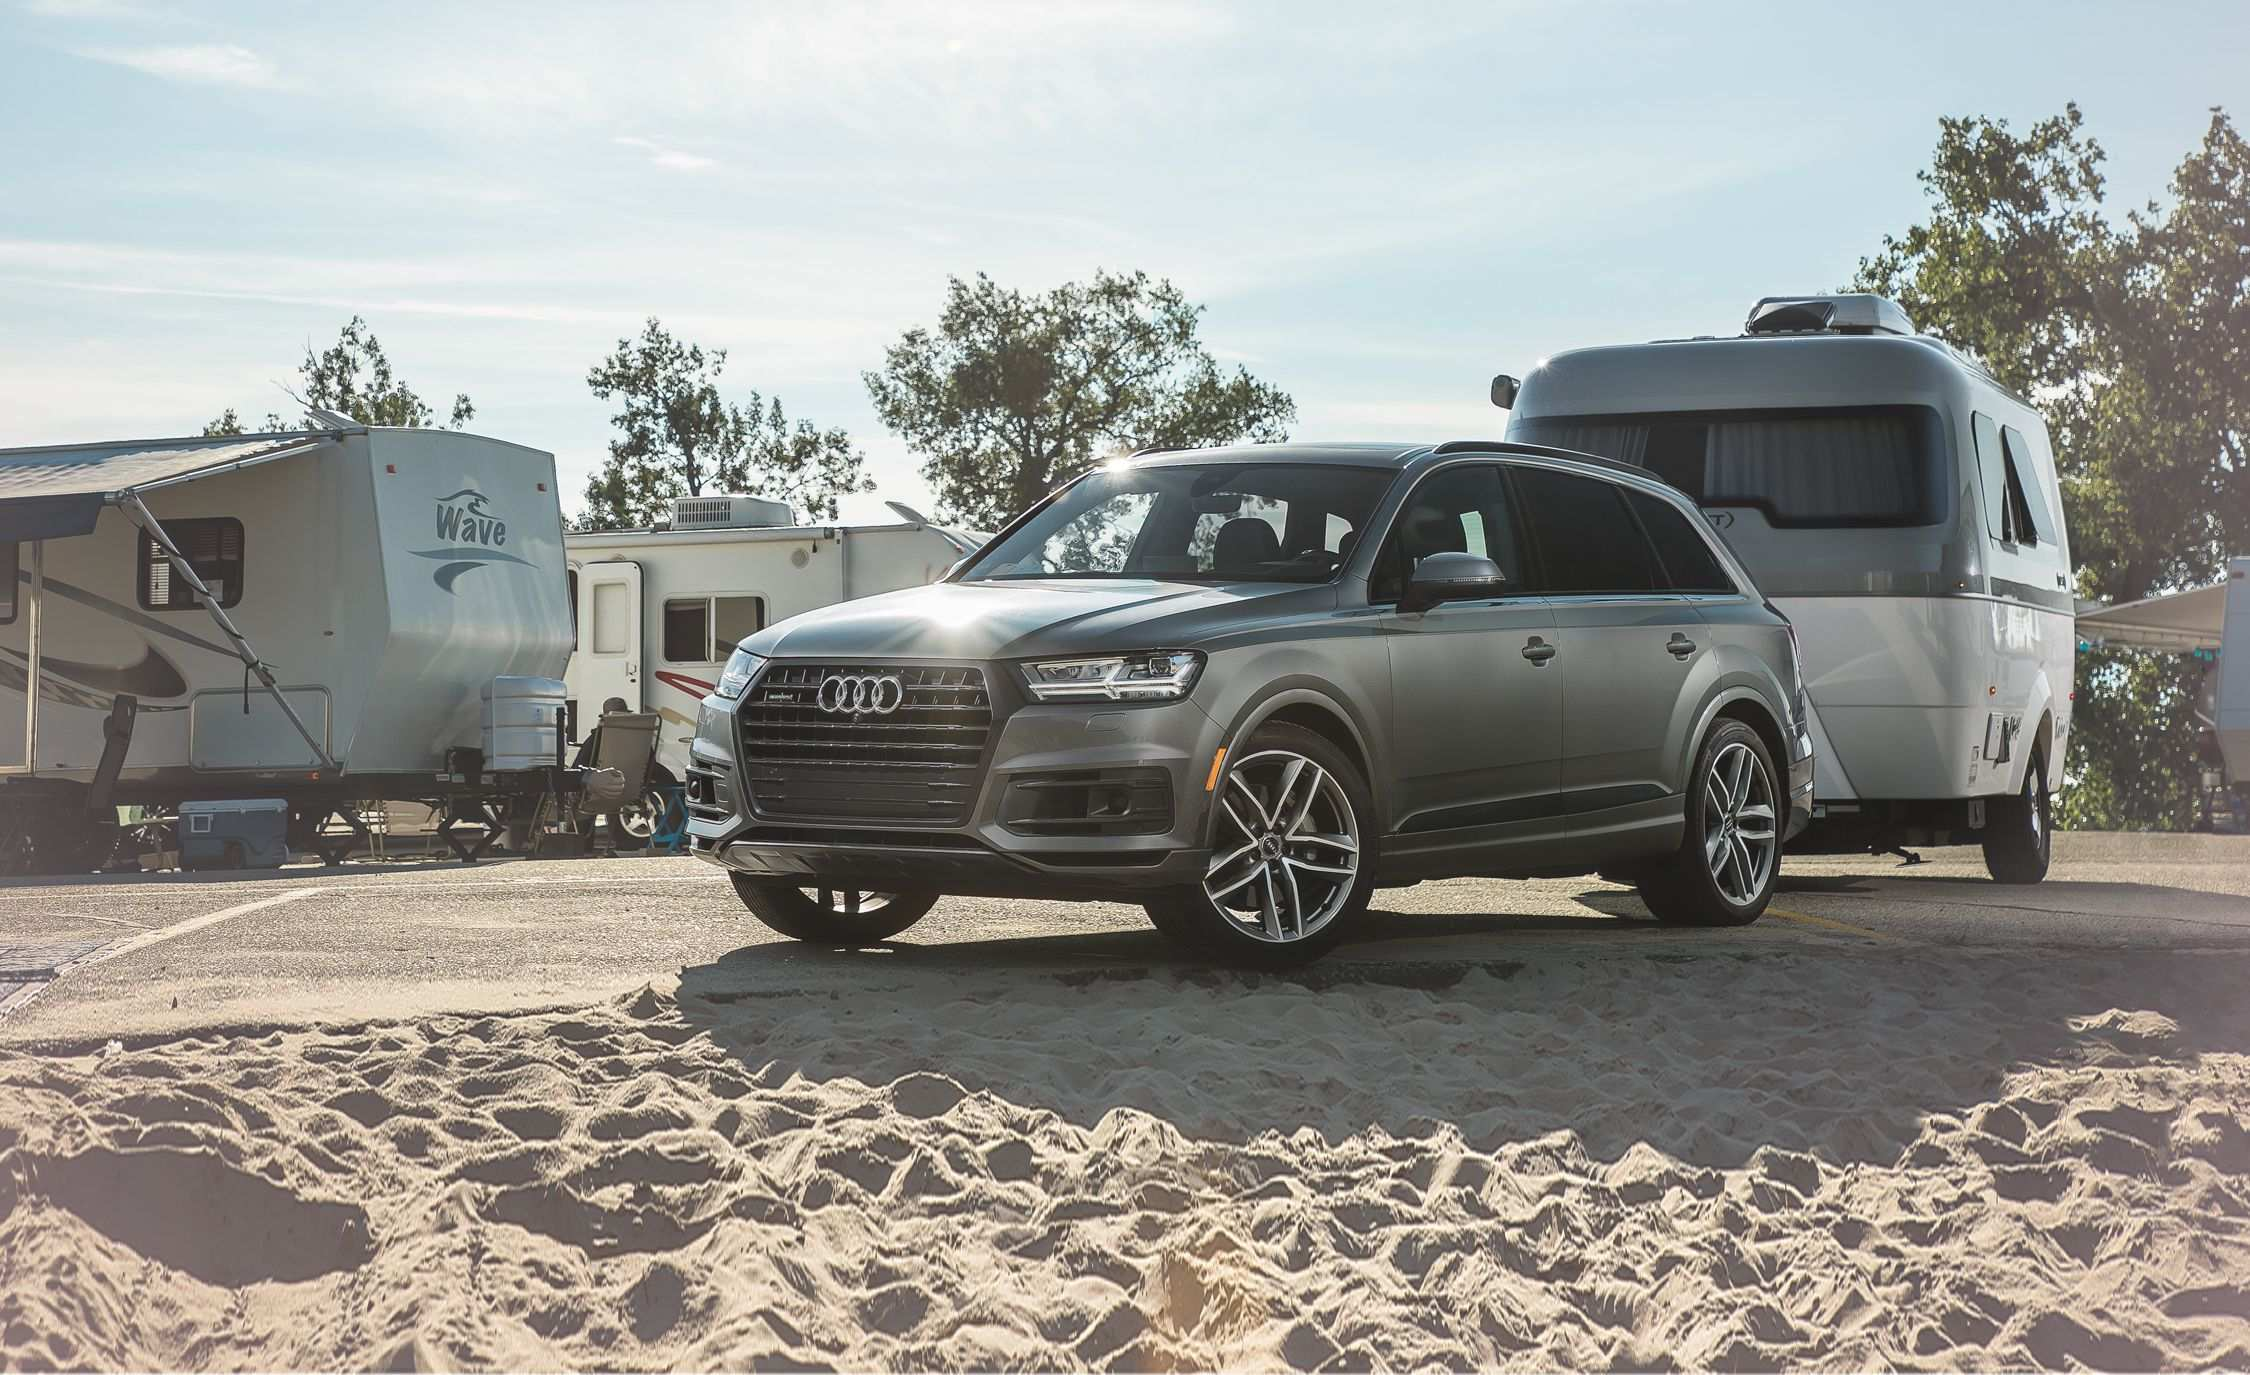 45 New 2019 Audi Q7 Tdi Usa Price for 2019 Audi Q7 Tdi Usa